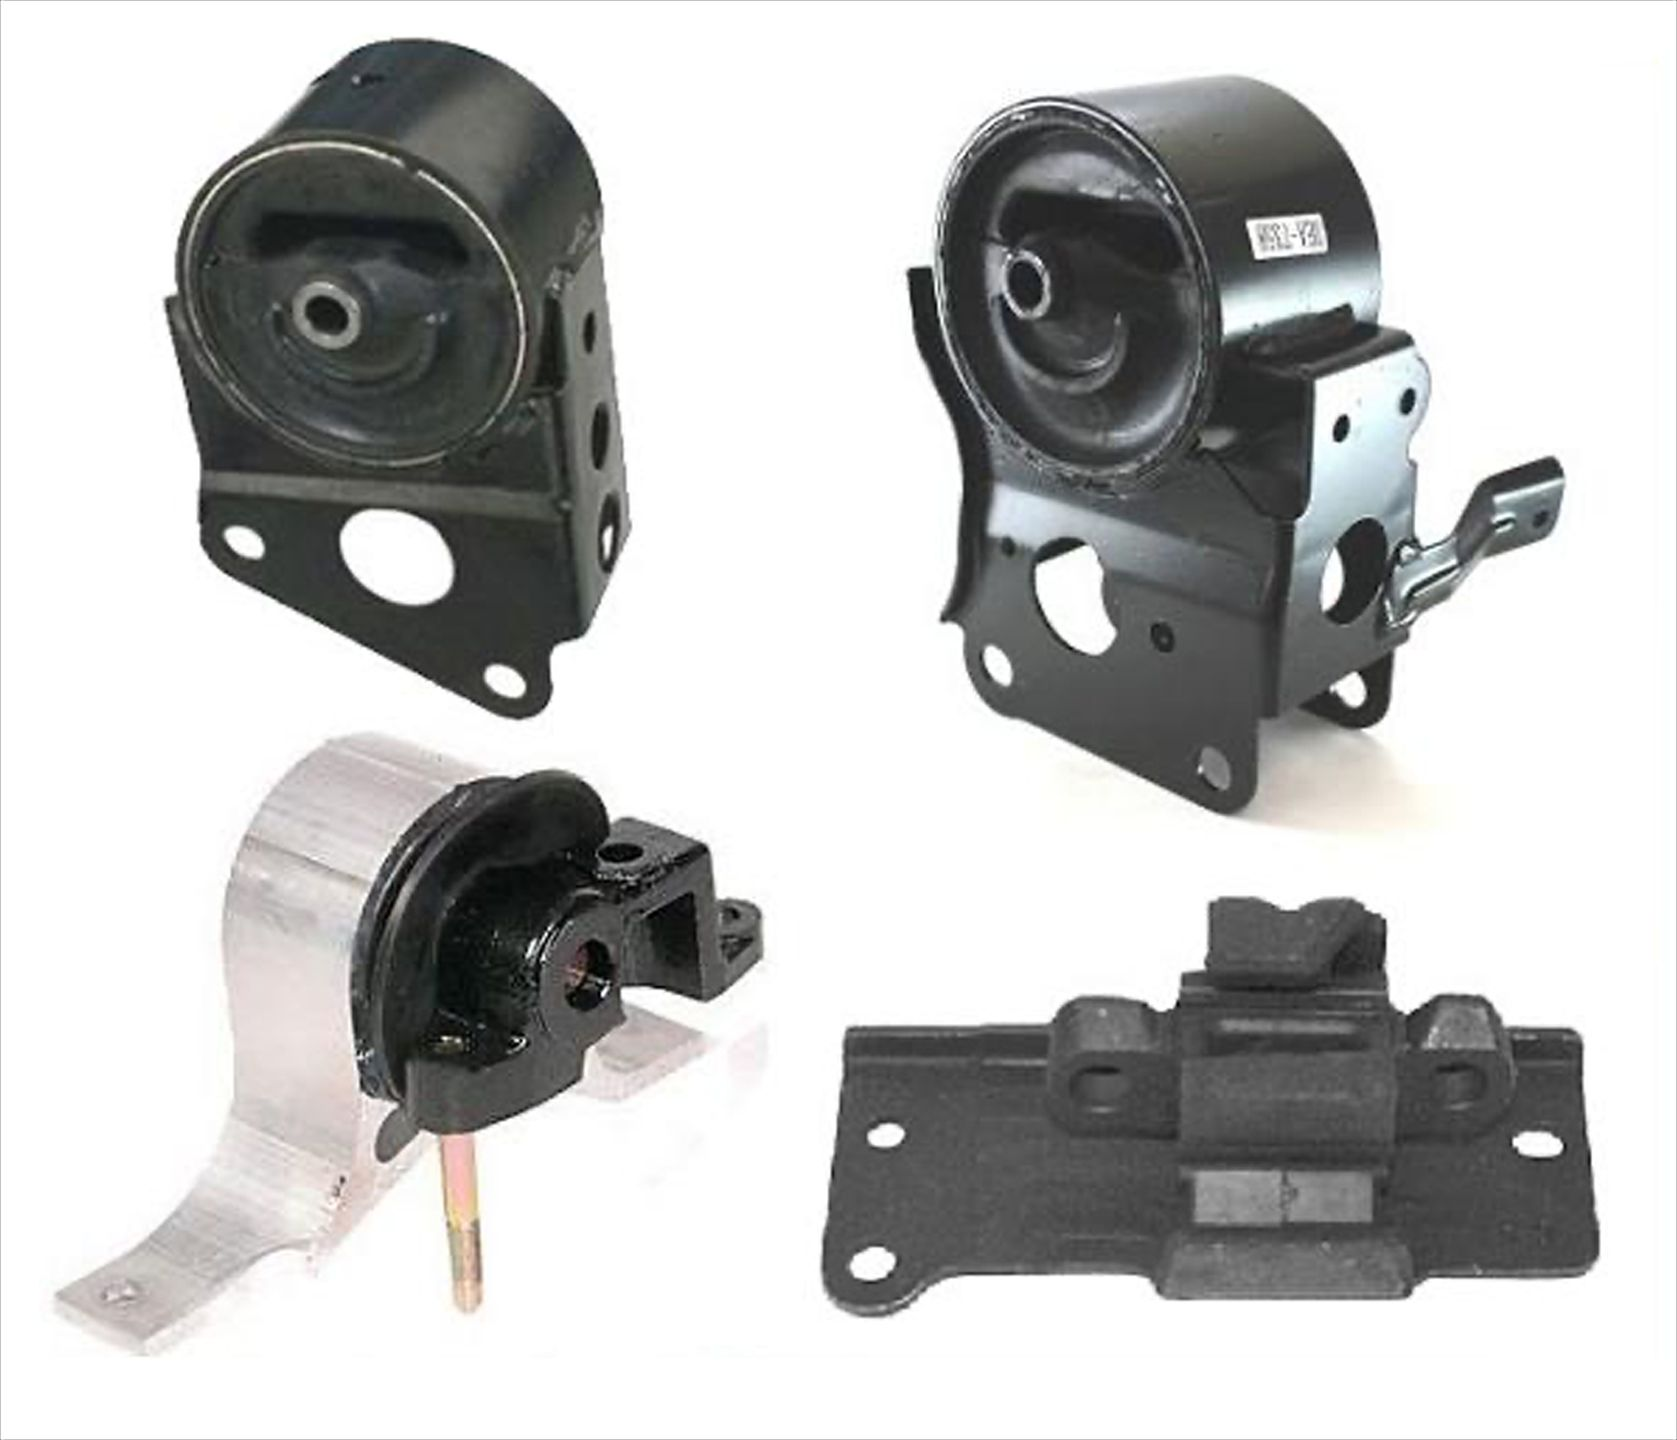 4pc Motor Mounts Set Kit for Automatic Transmission Only Engine Mounts Compatible with 03-07 Nissan Murano FWD 2WD